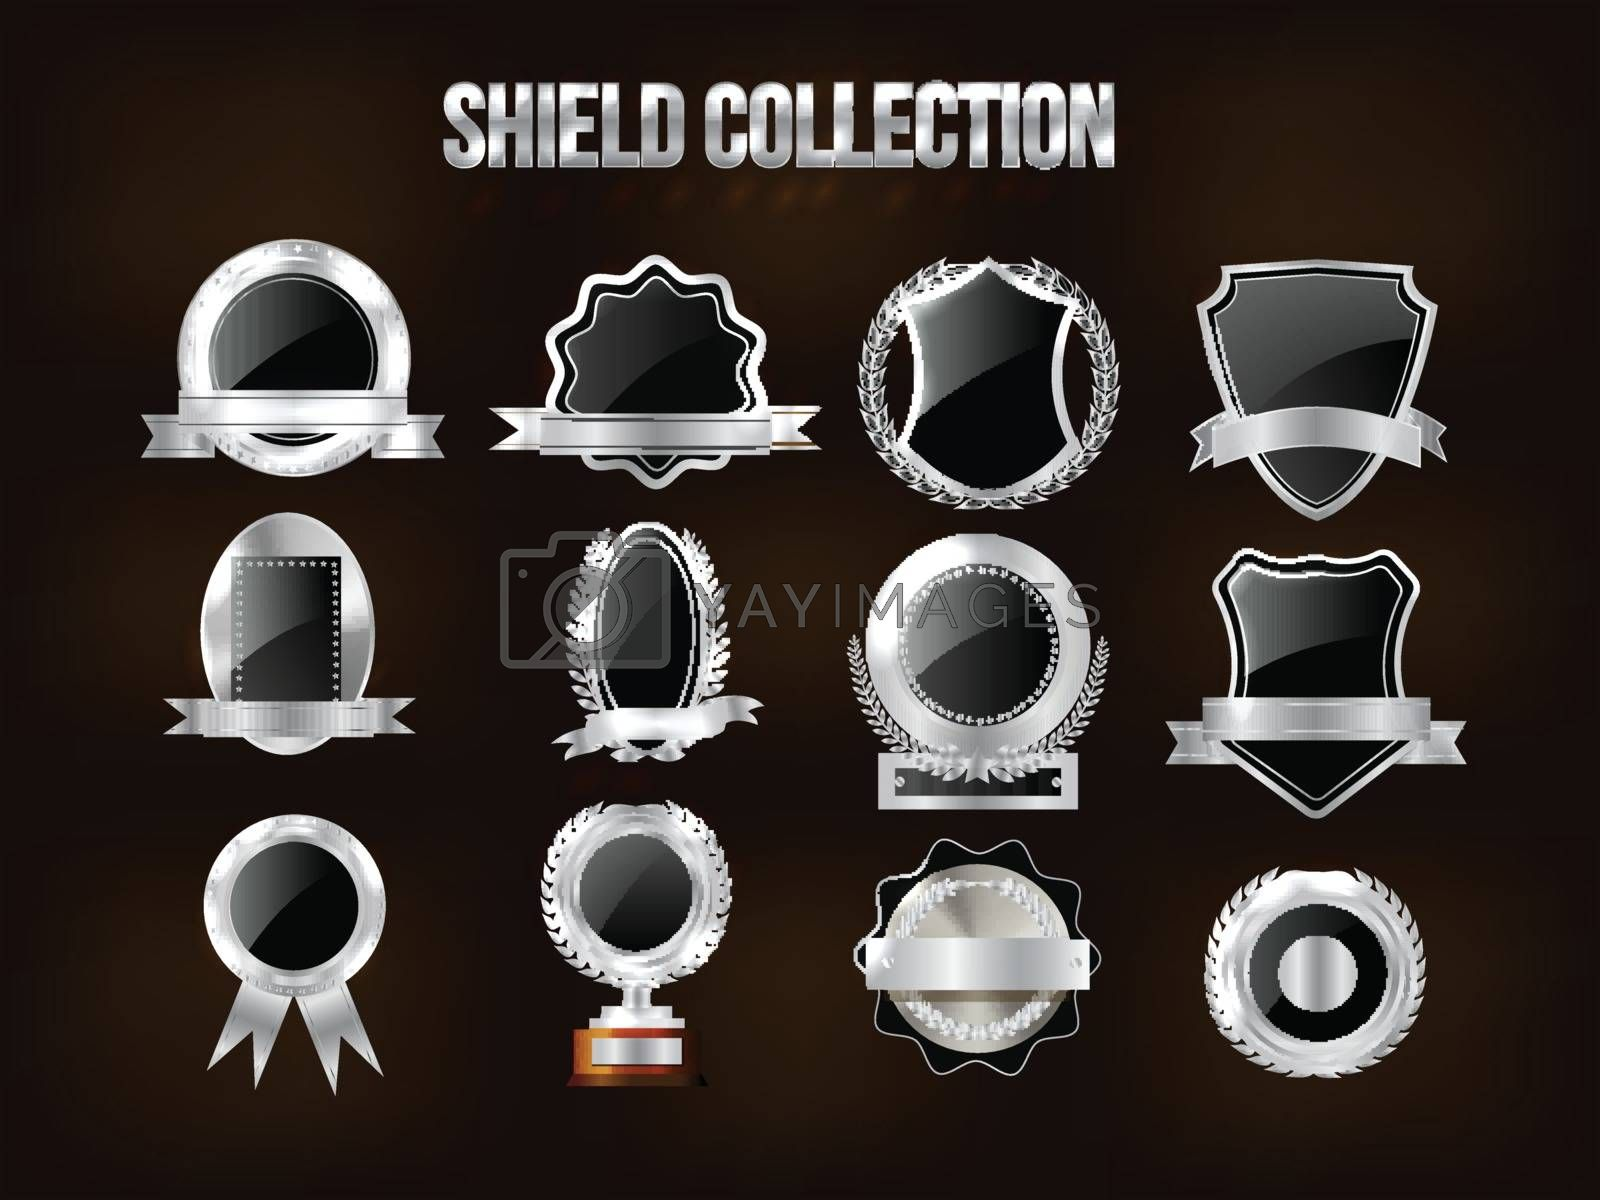 Collection of Silver Shield, Badge, Label, Award or Ribbons, Vector illustration.